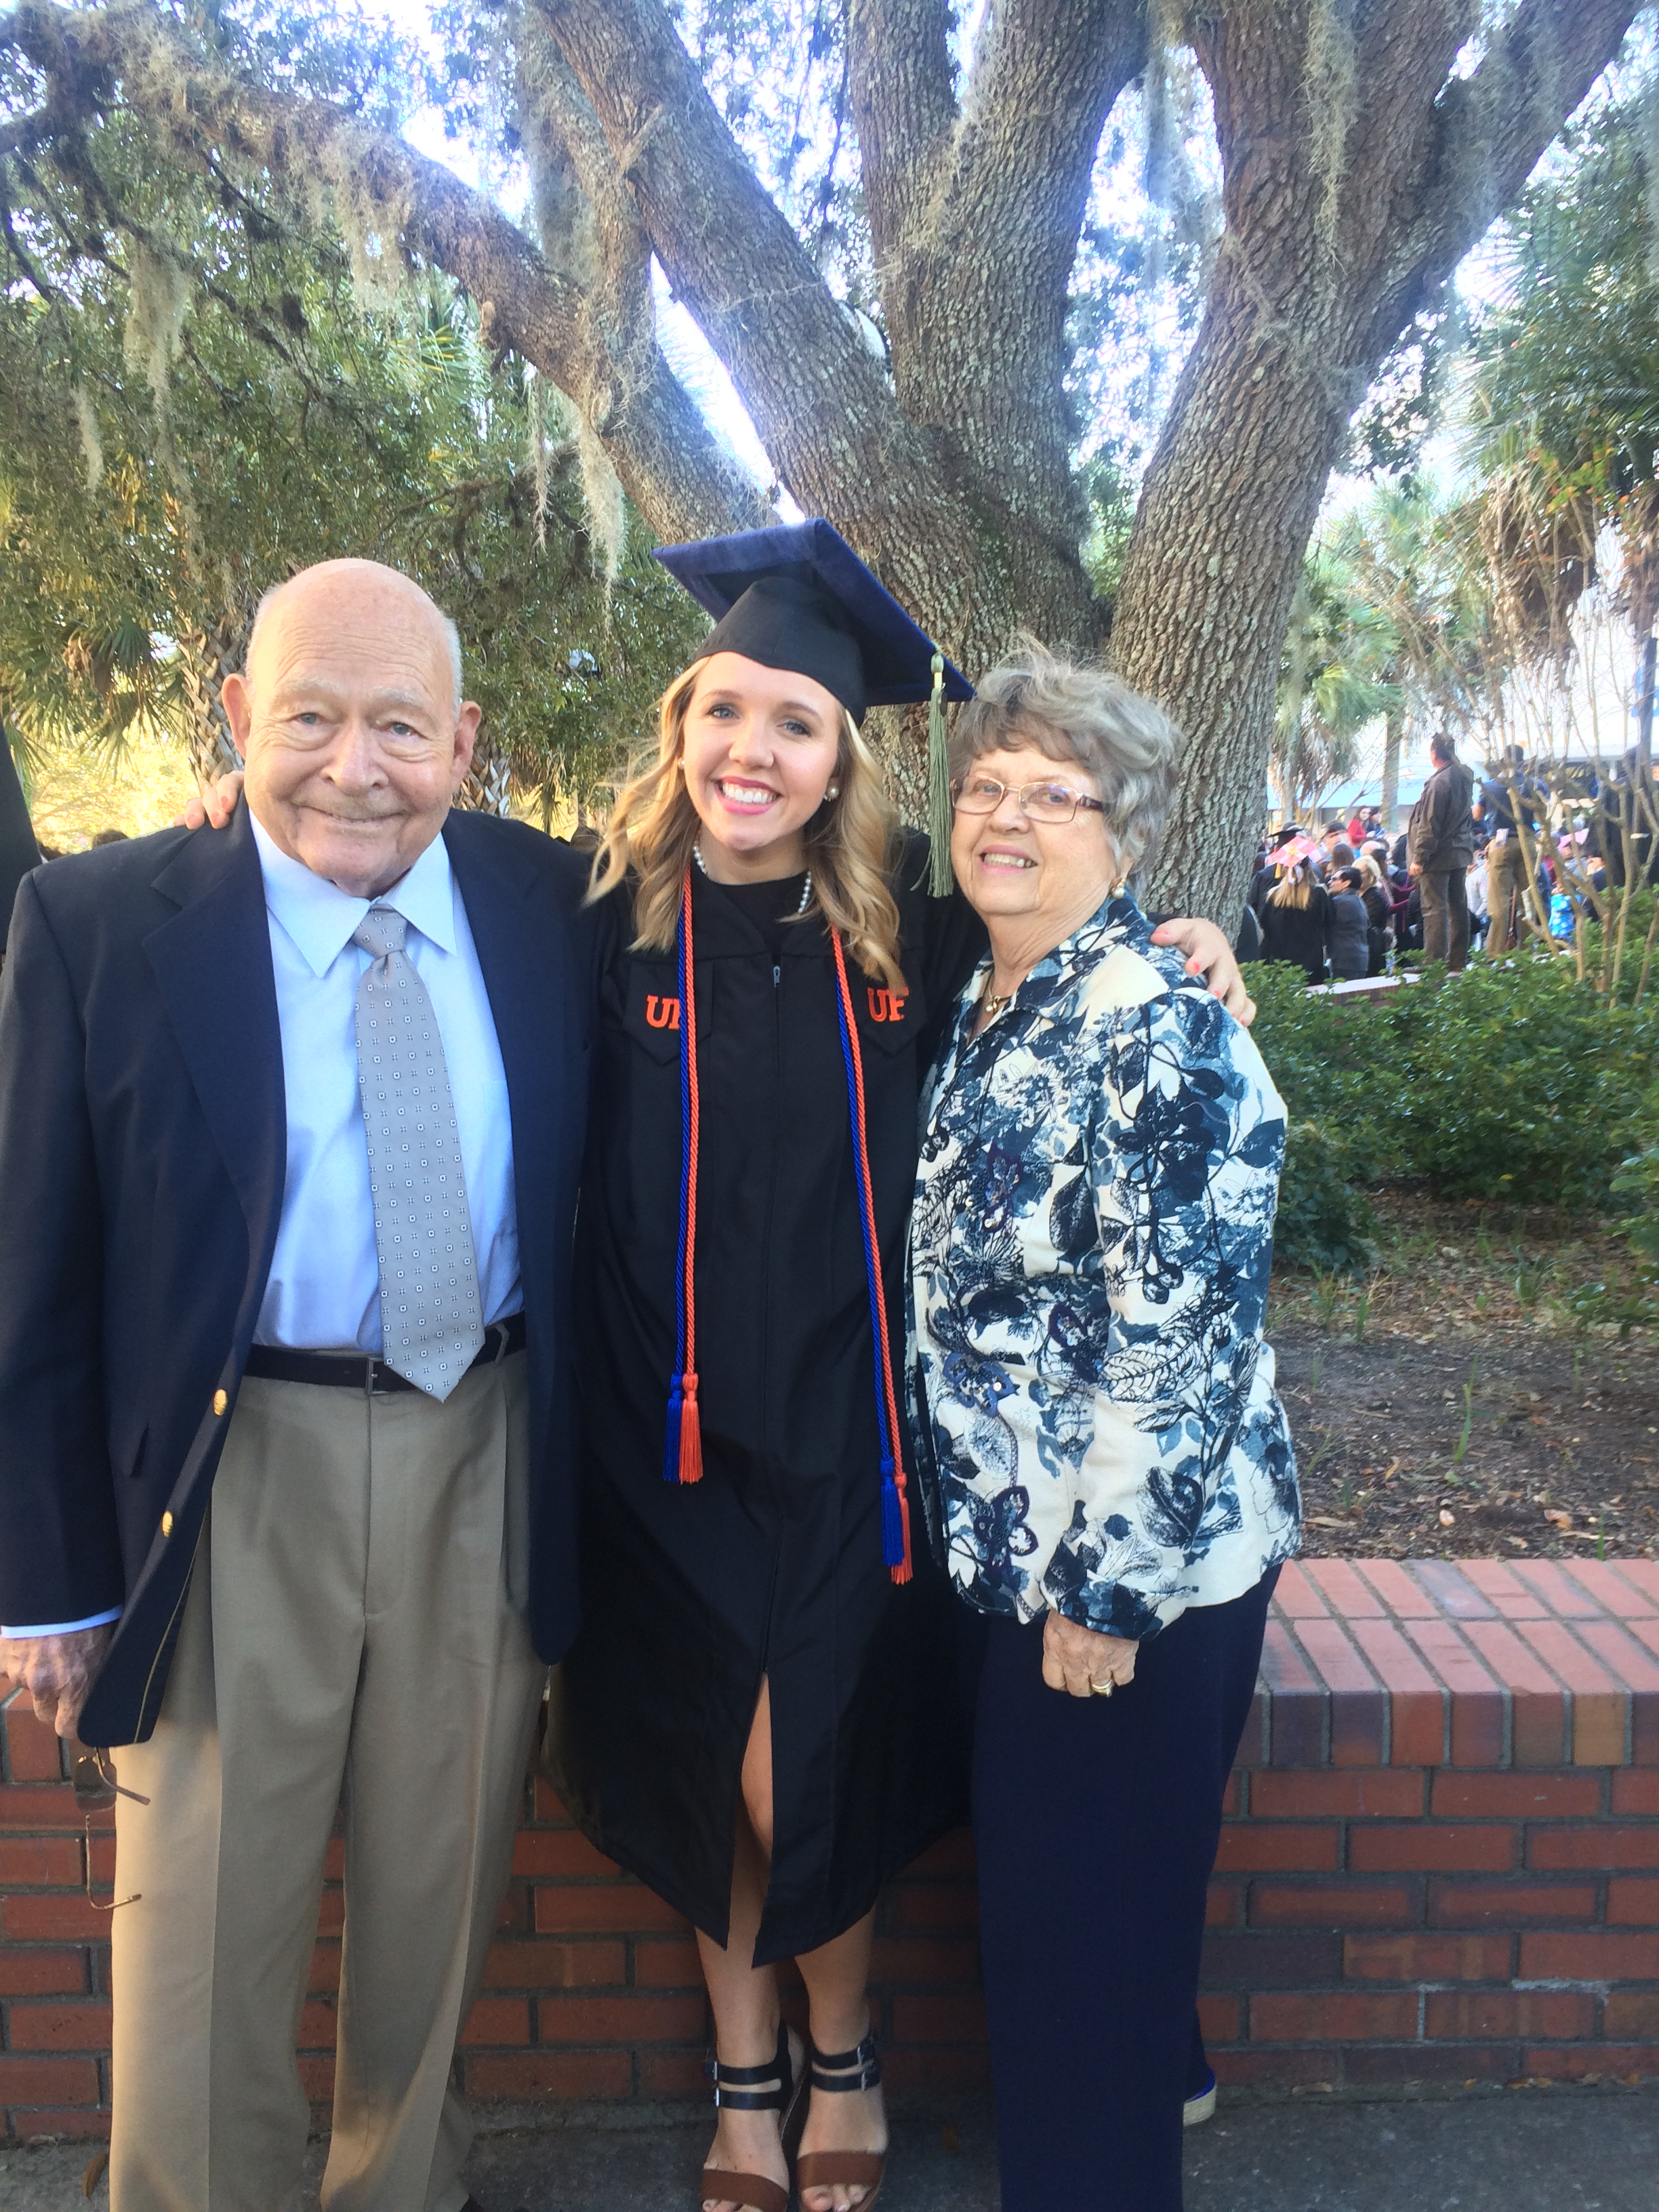 Celebrating undergrad graduation at the University of Florida